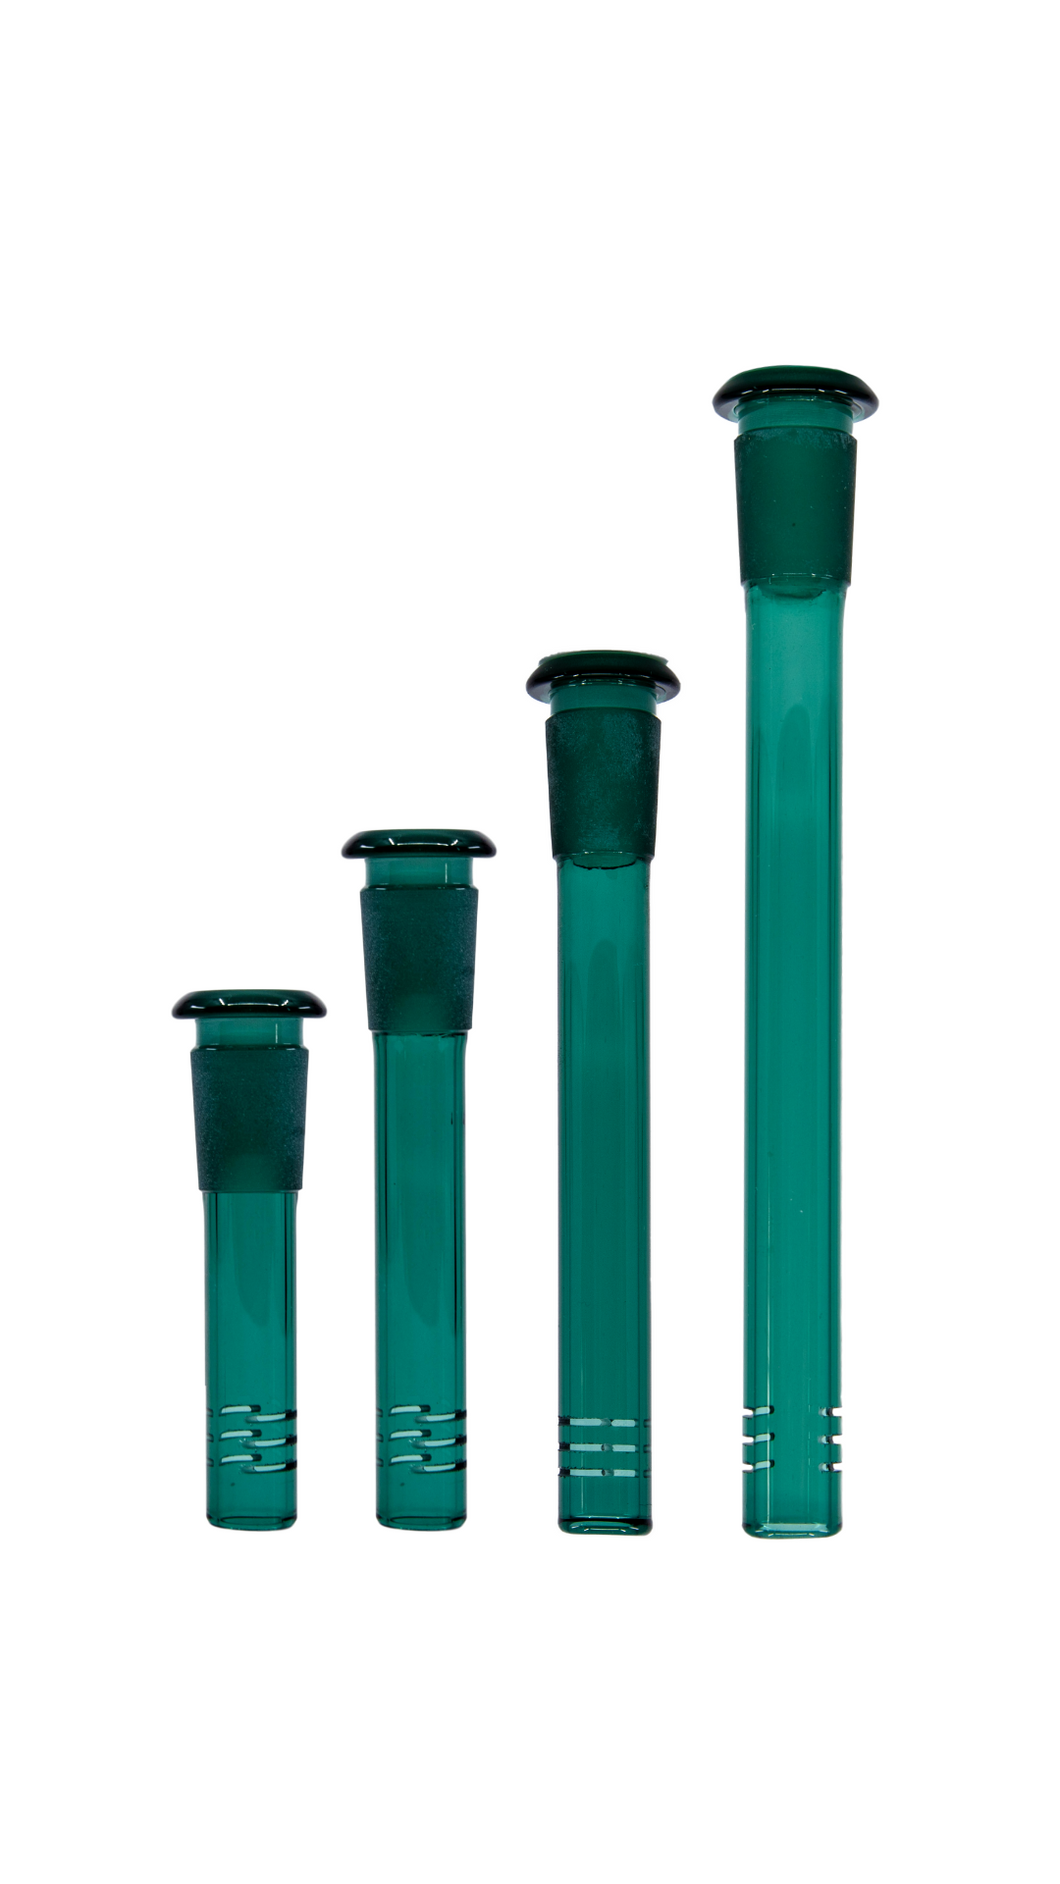 Teal Glass Slit Diffusor Downstem 14mm - Assorted Sizes